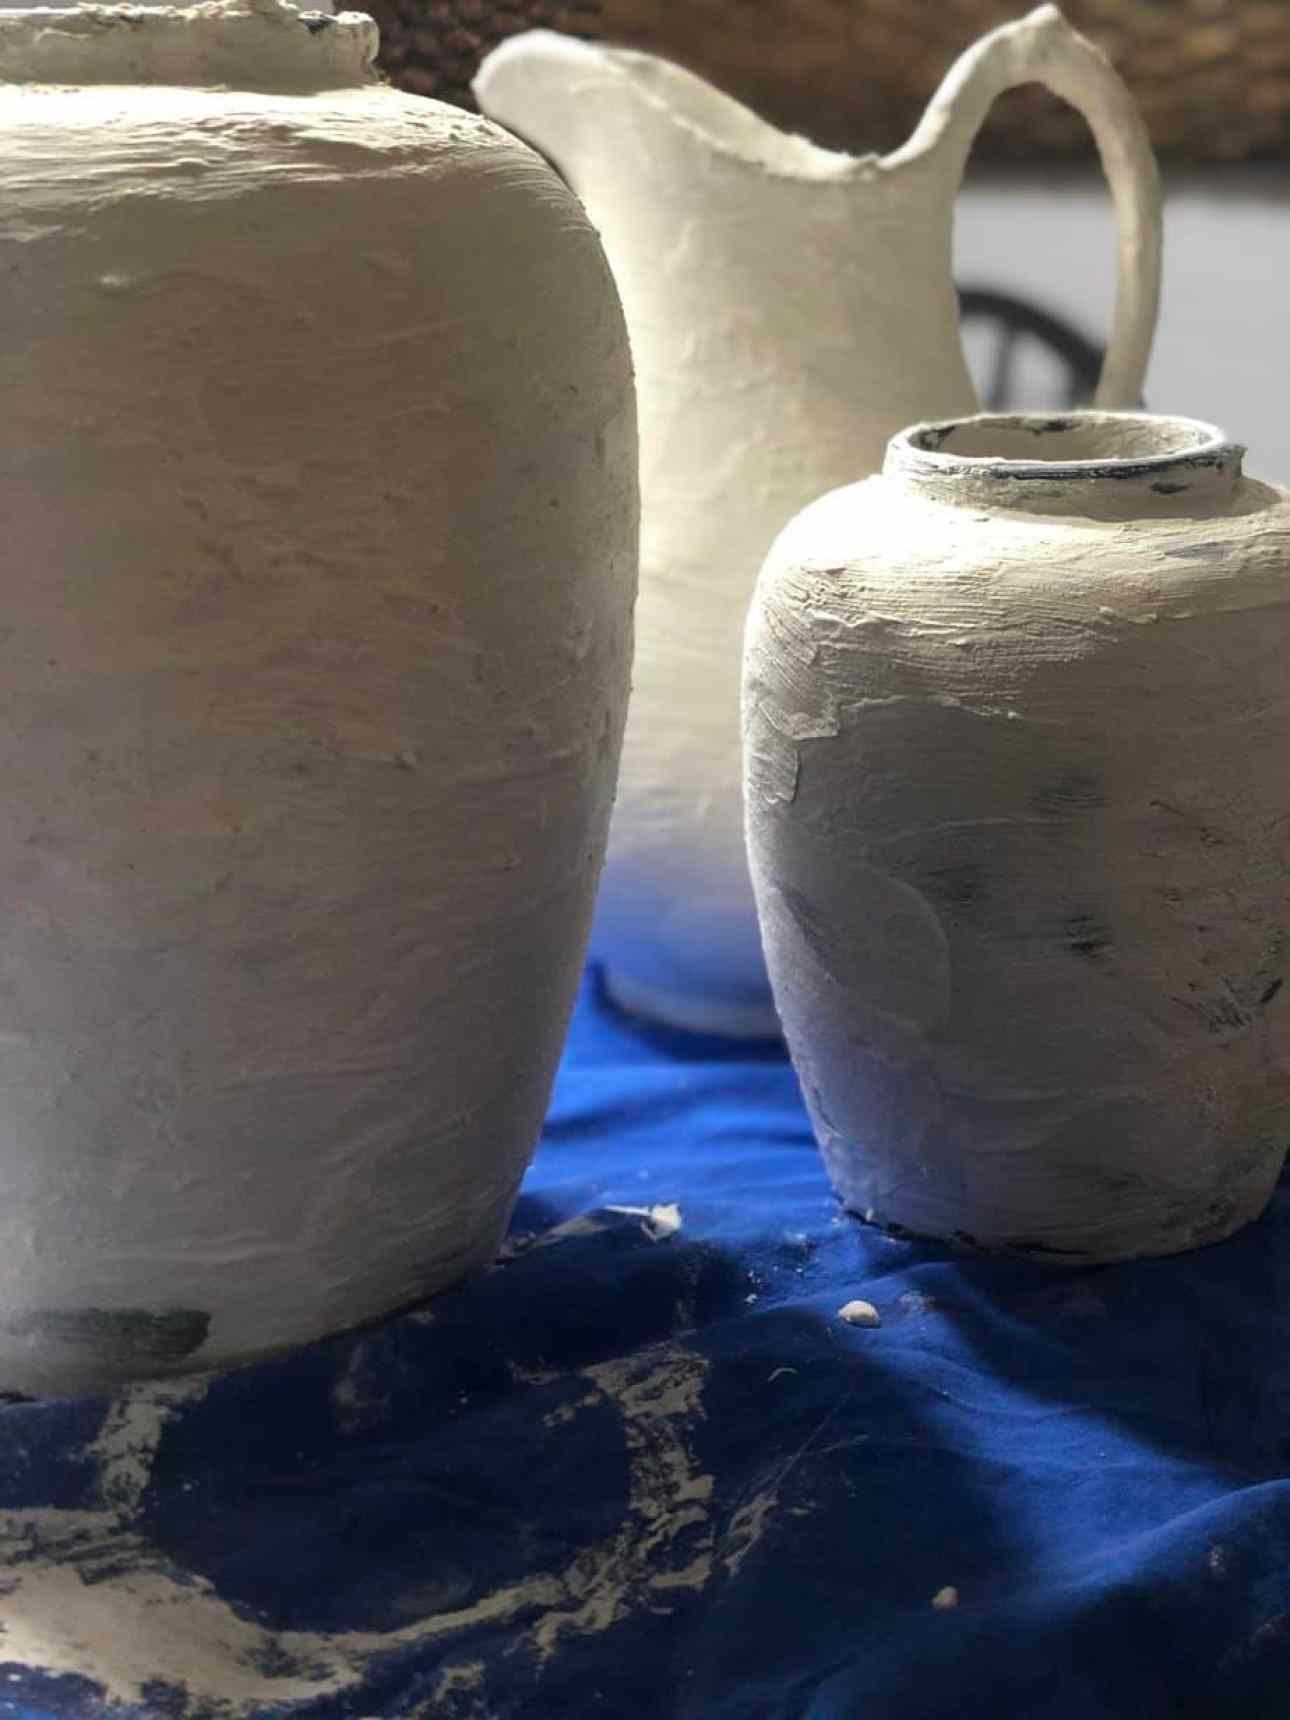 Vases covered in plaster on a blue drop sheet.